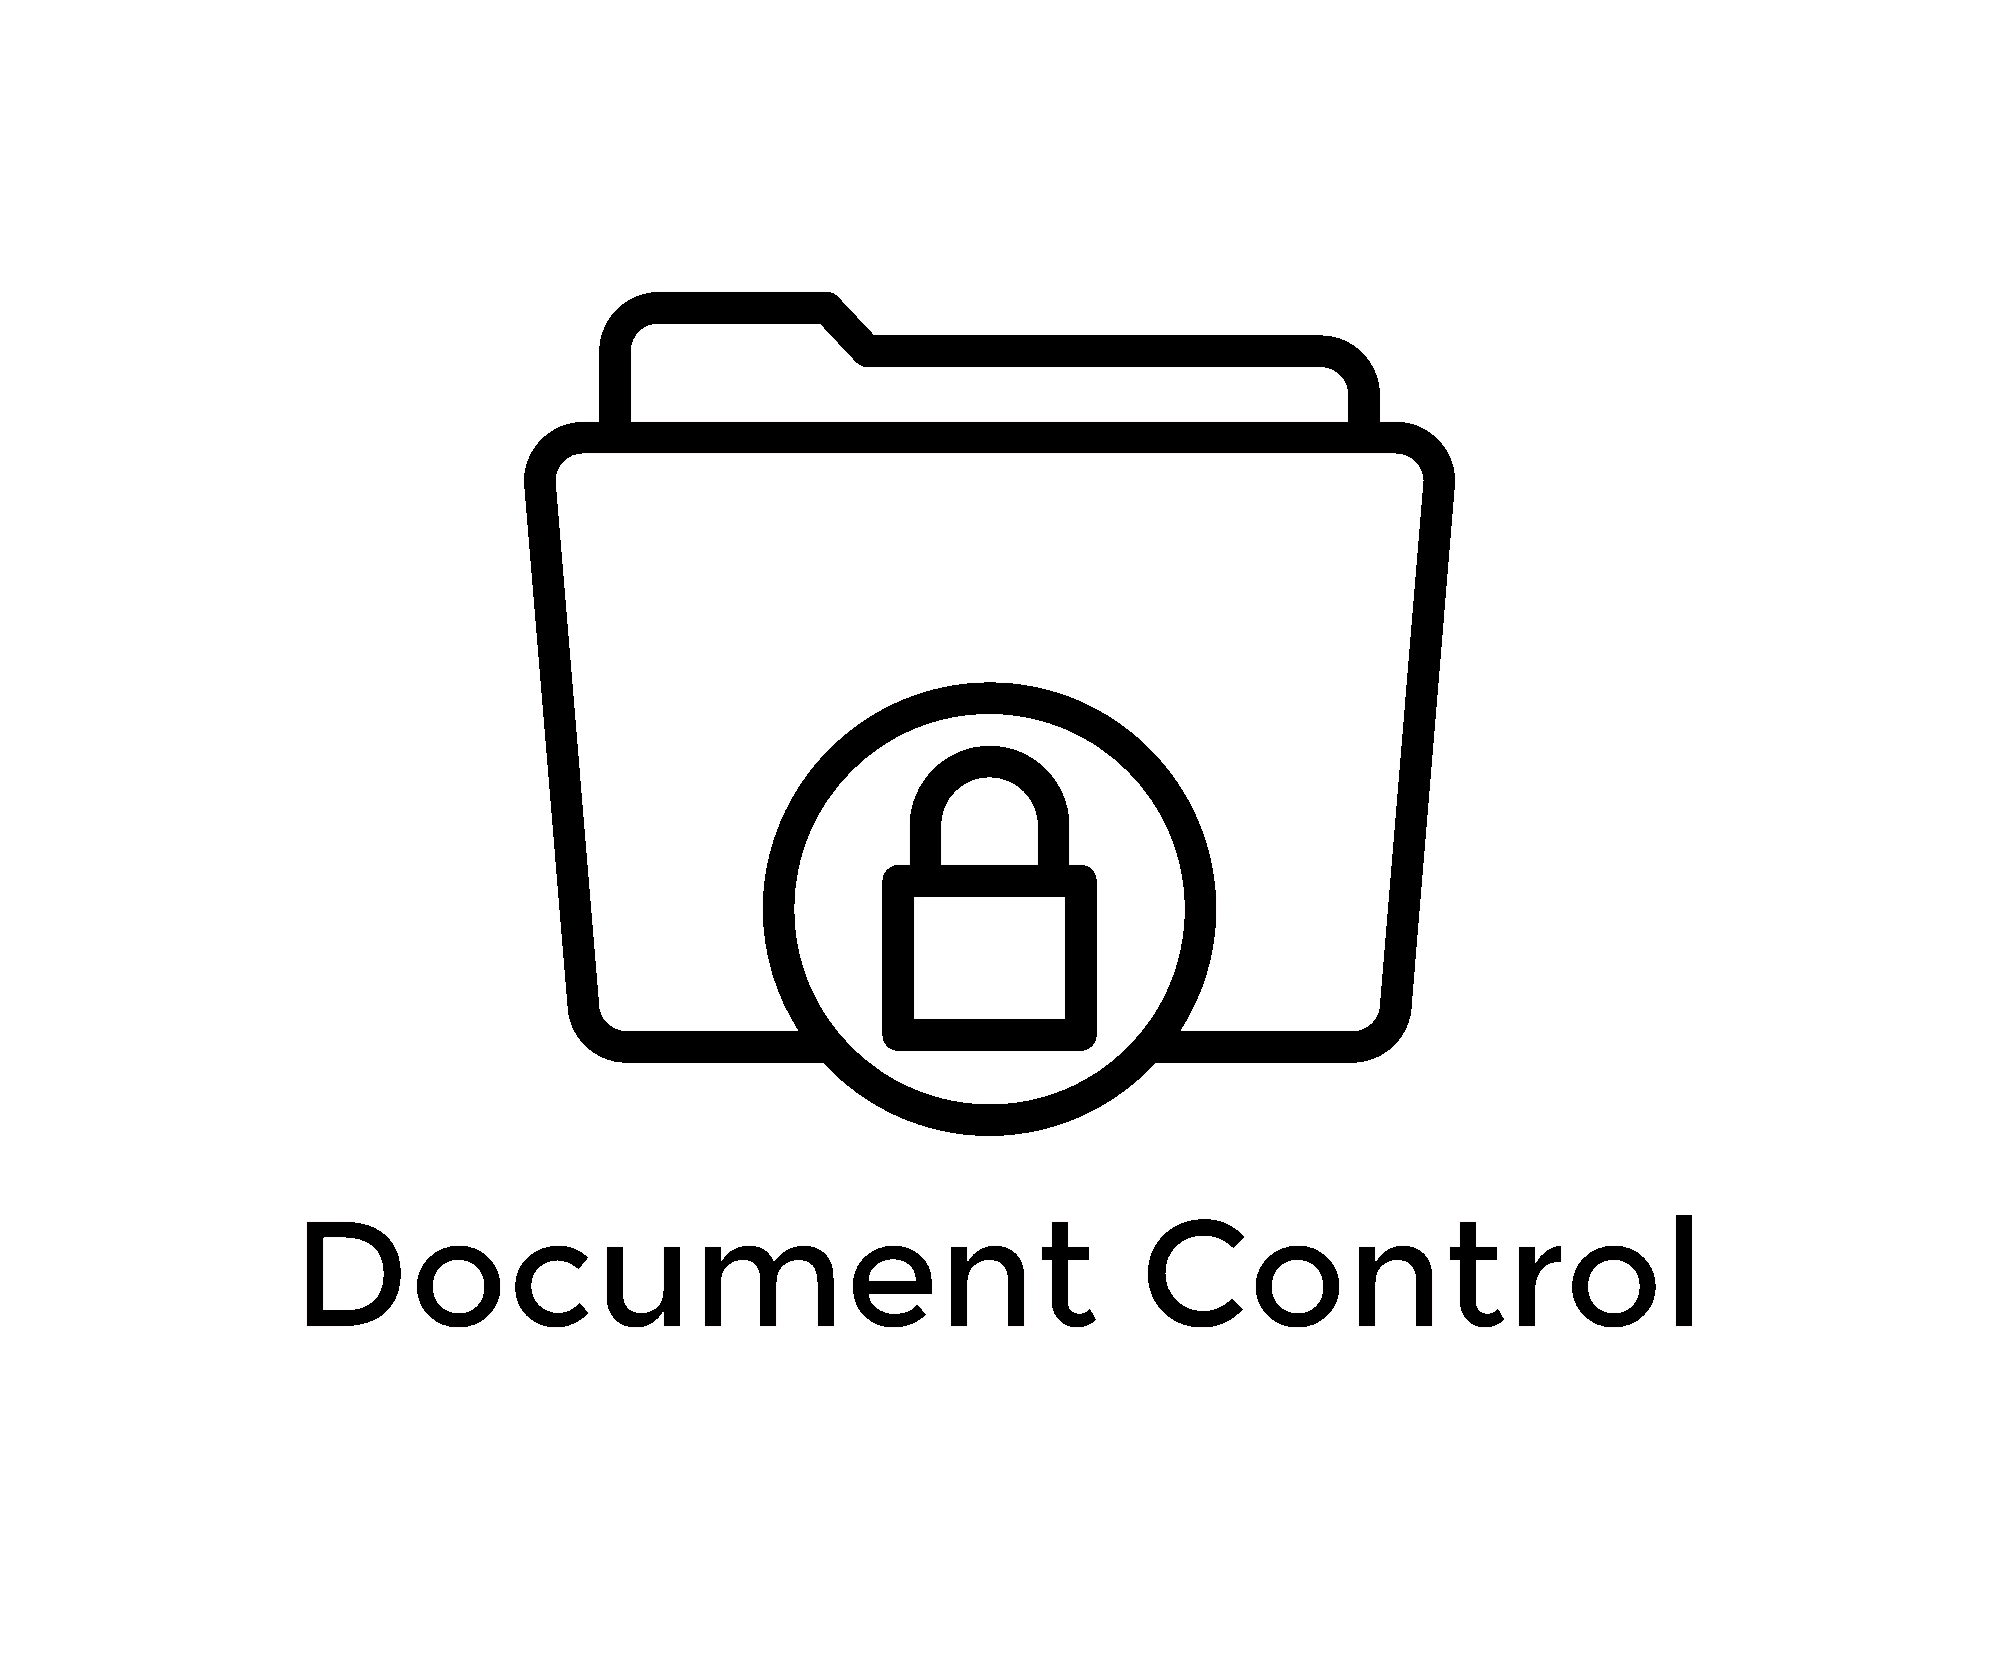 Document Control-logo black.png